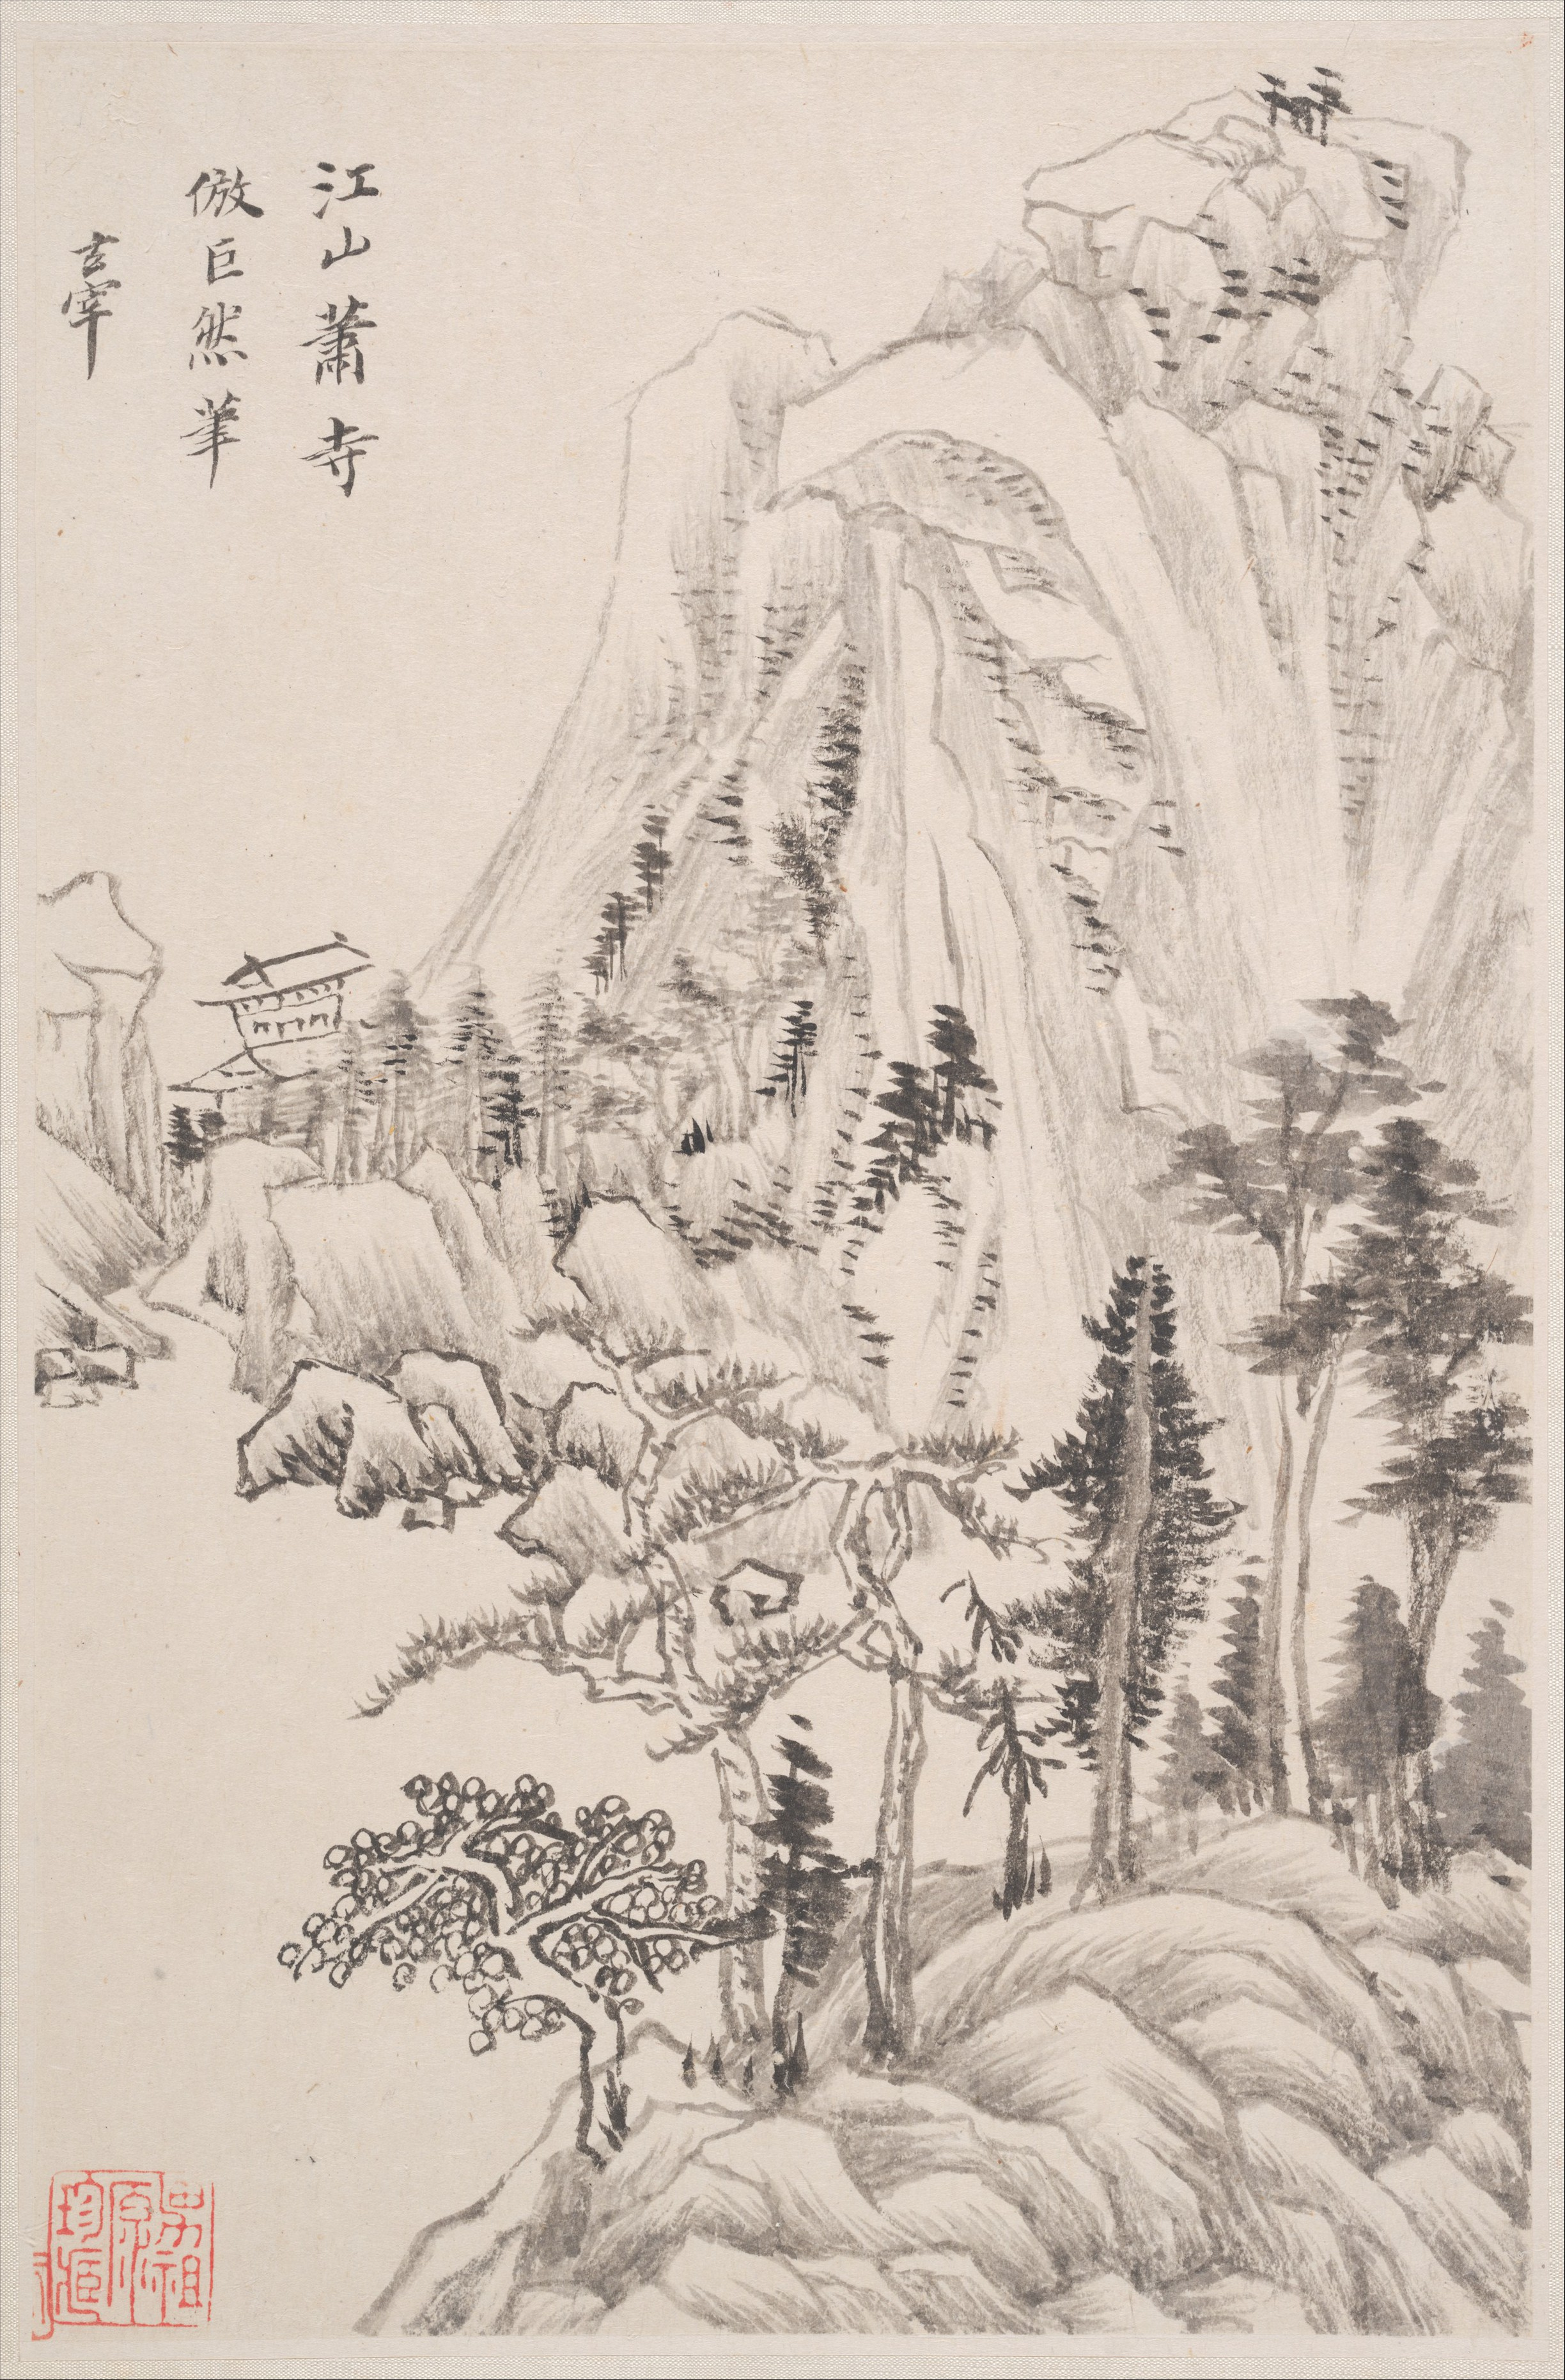 Dong Qichang, Landscape in the Manner of Old Masters